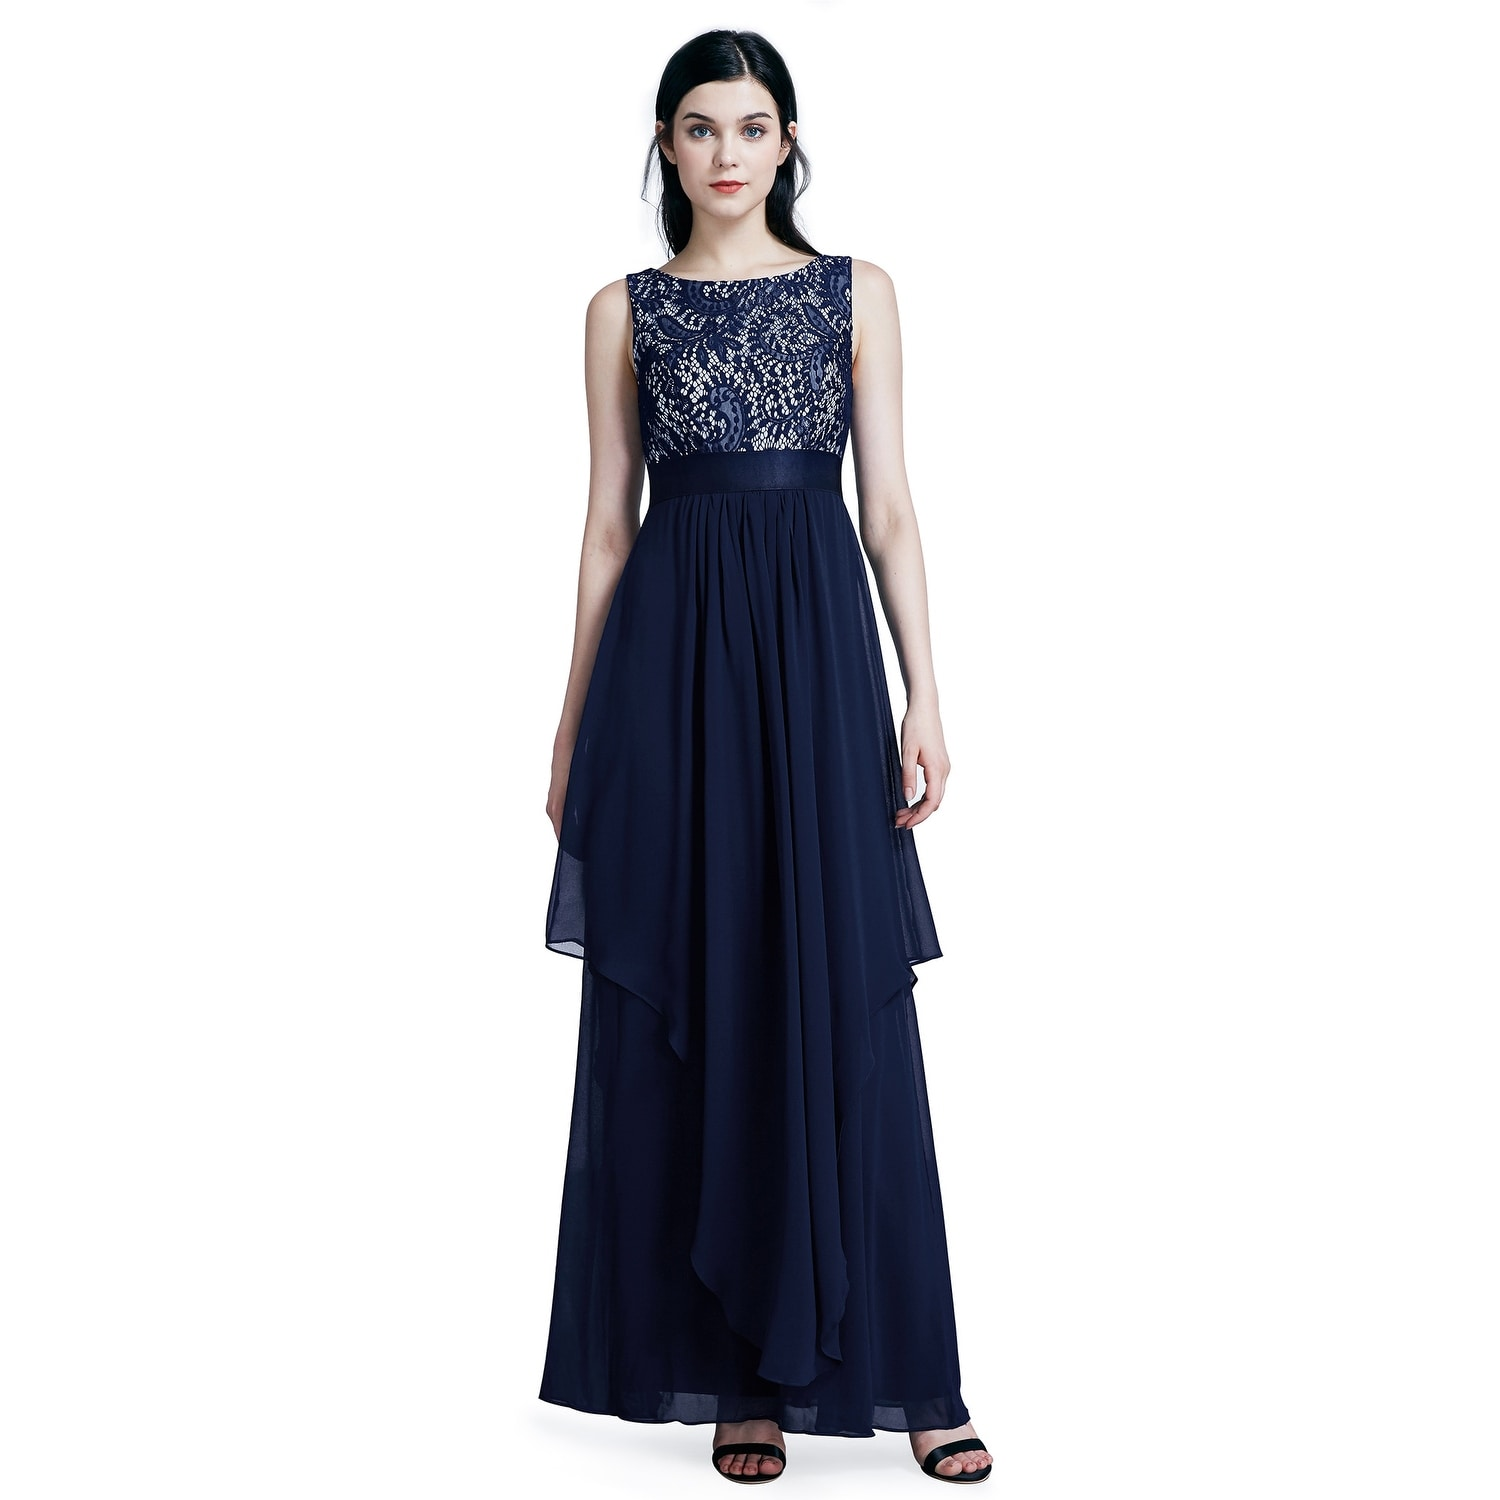 9eb9ce5d19d52 Ever-Pretty Women's Lace Long Evening Party Maxi Dresses for Women 08217